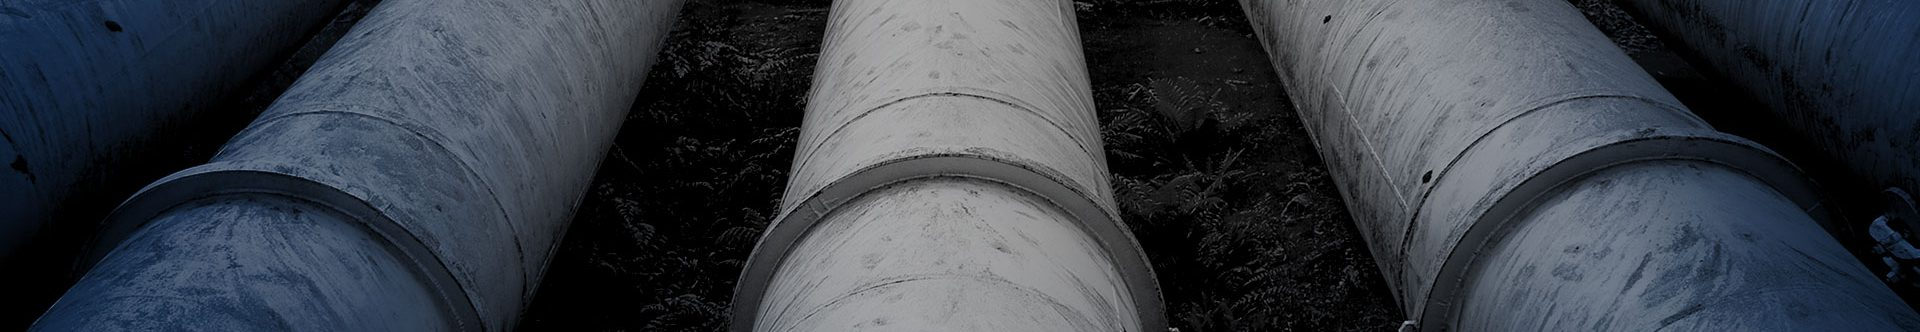 Large industrial pipes laid in a row, black and white image